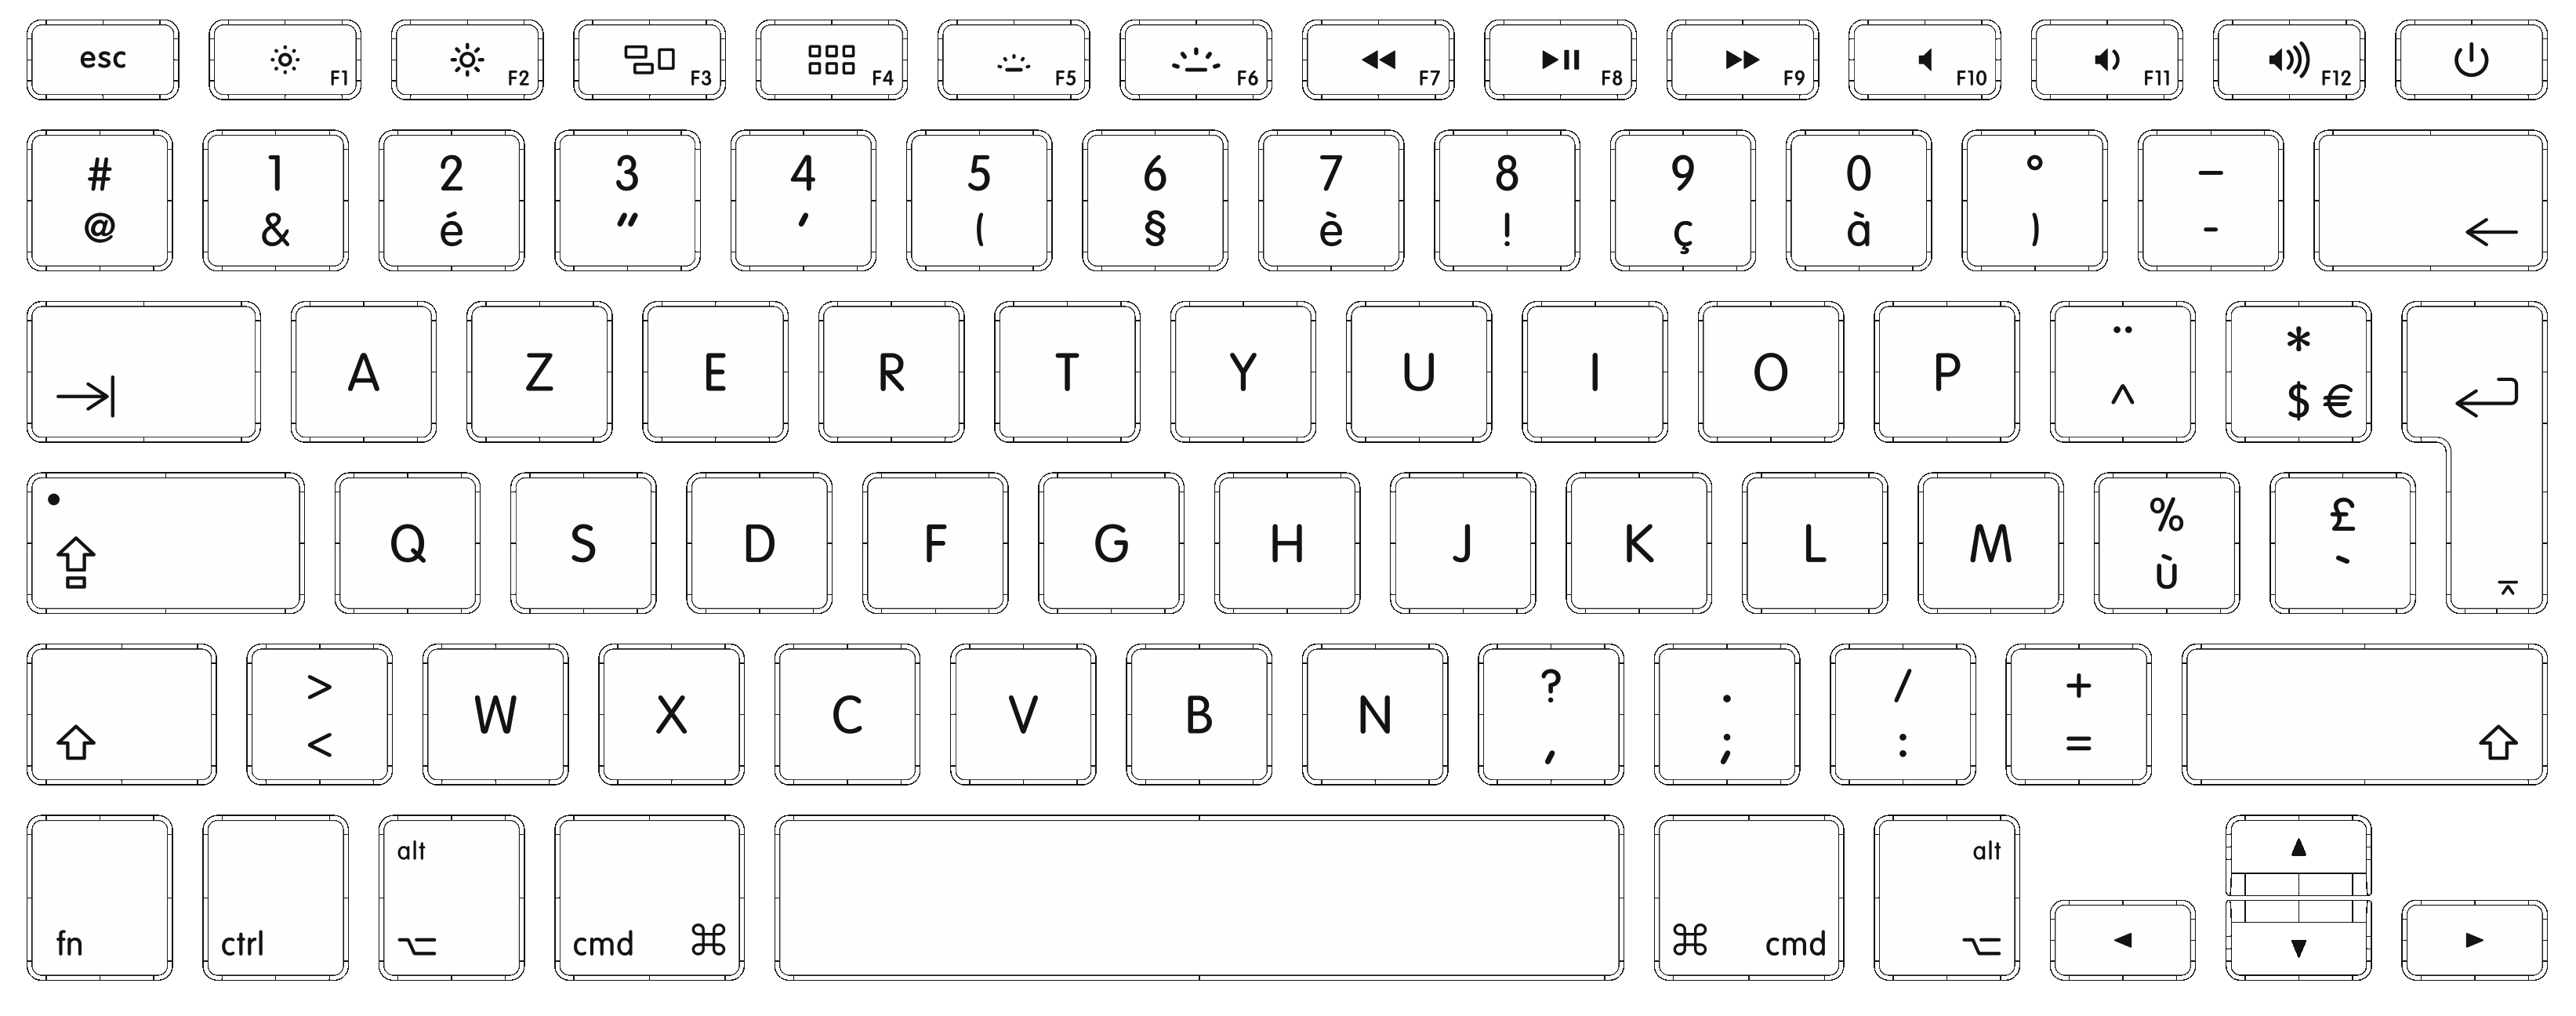 Drawing keyboard comp. White background images all